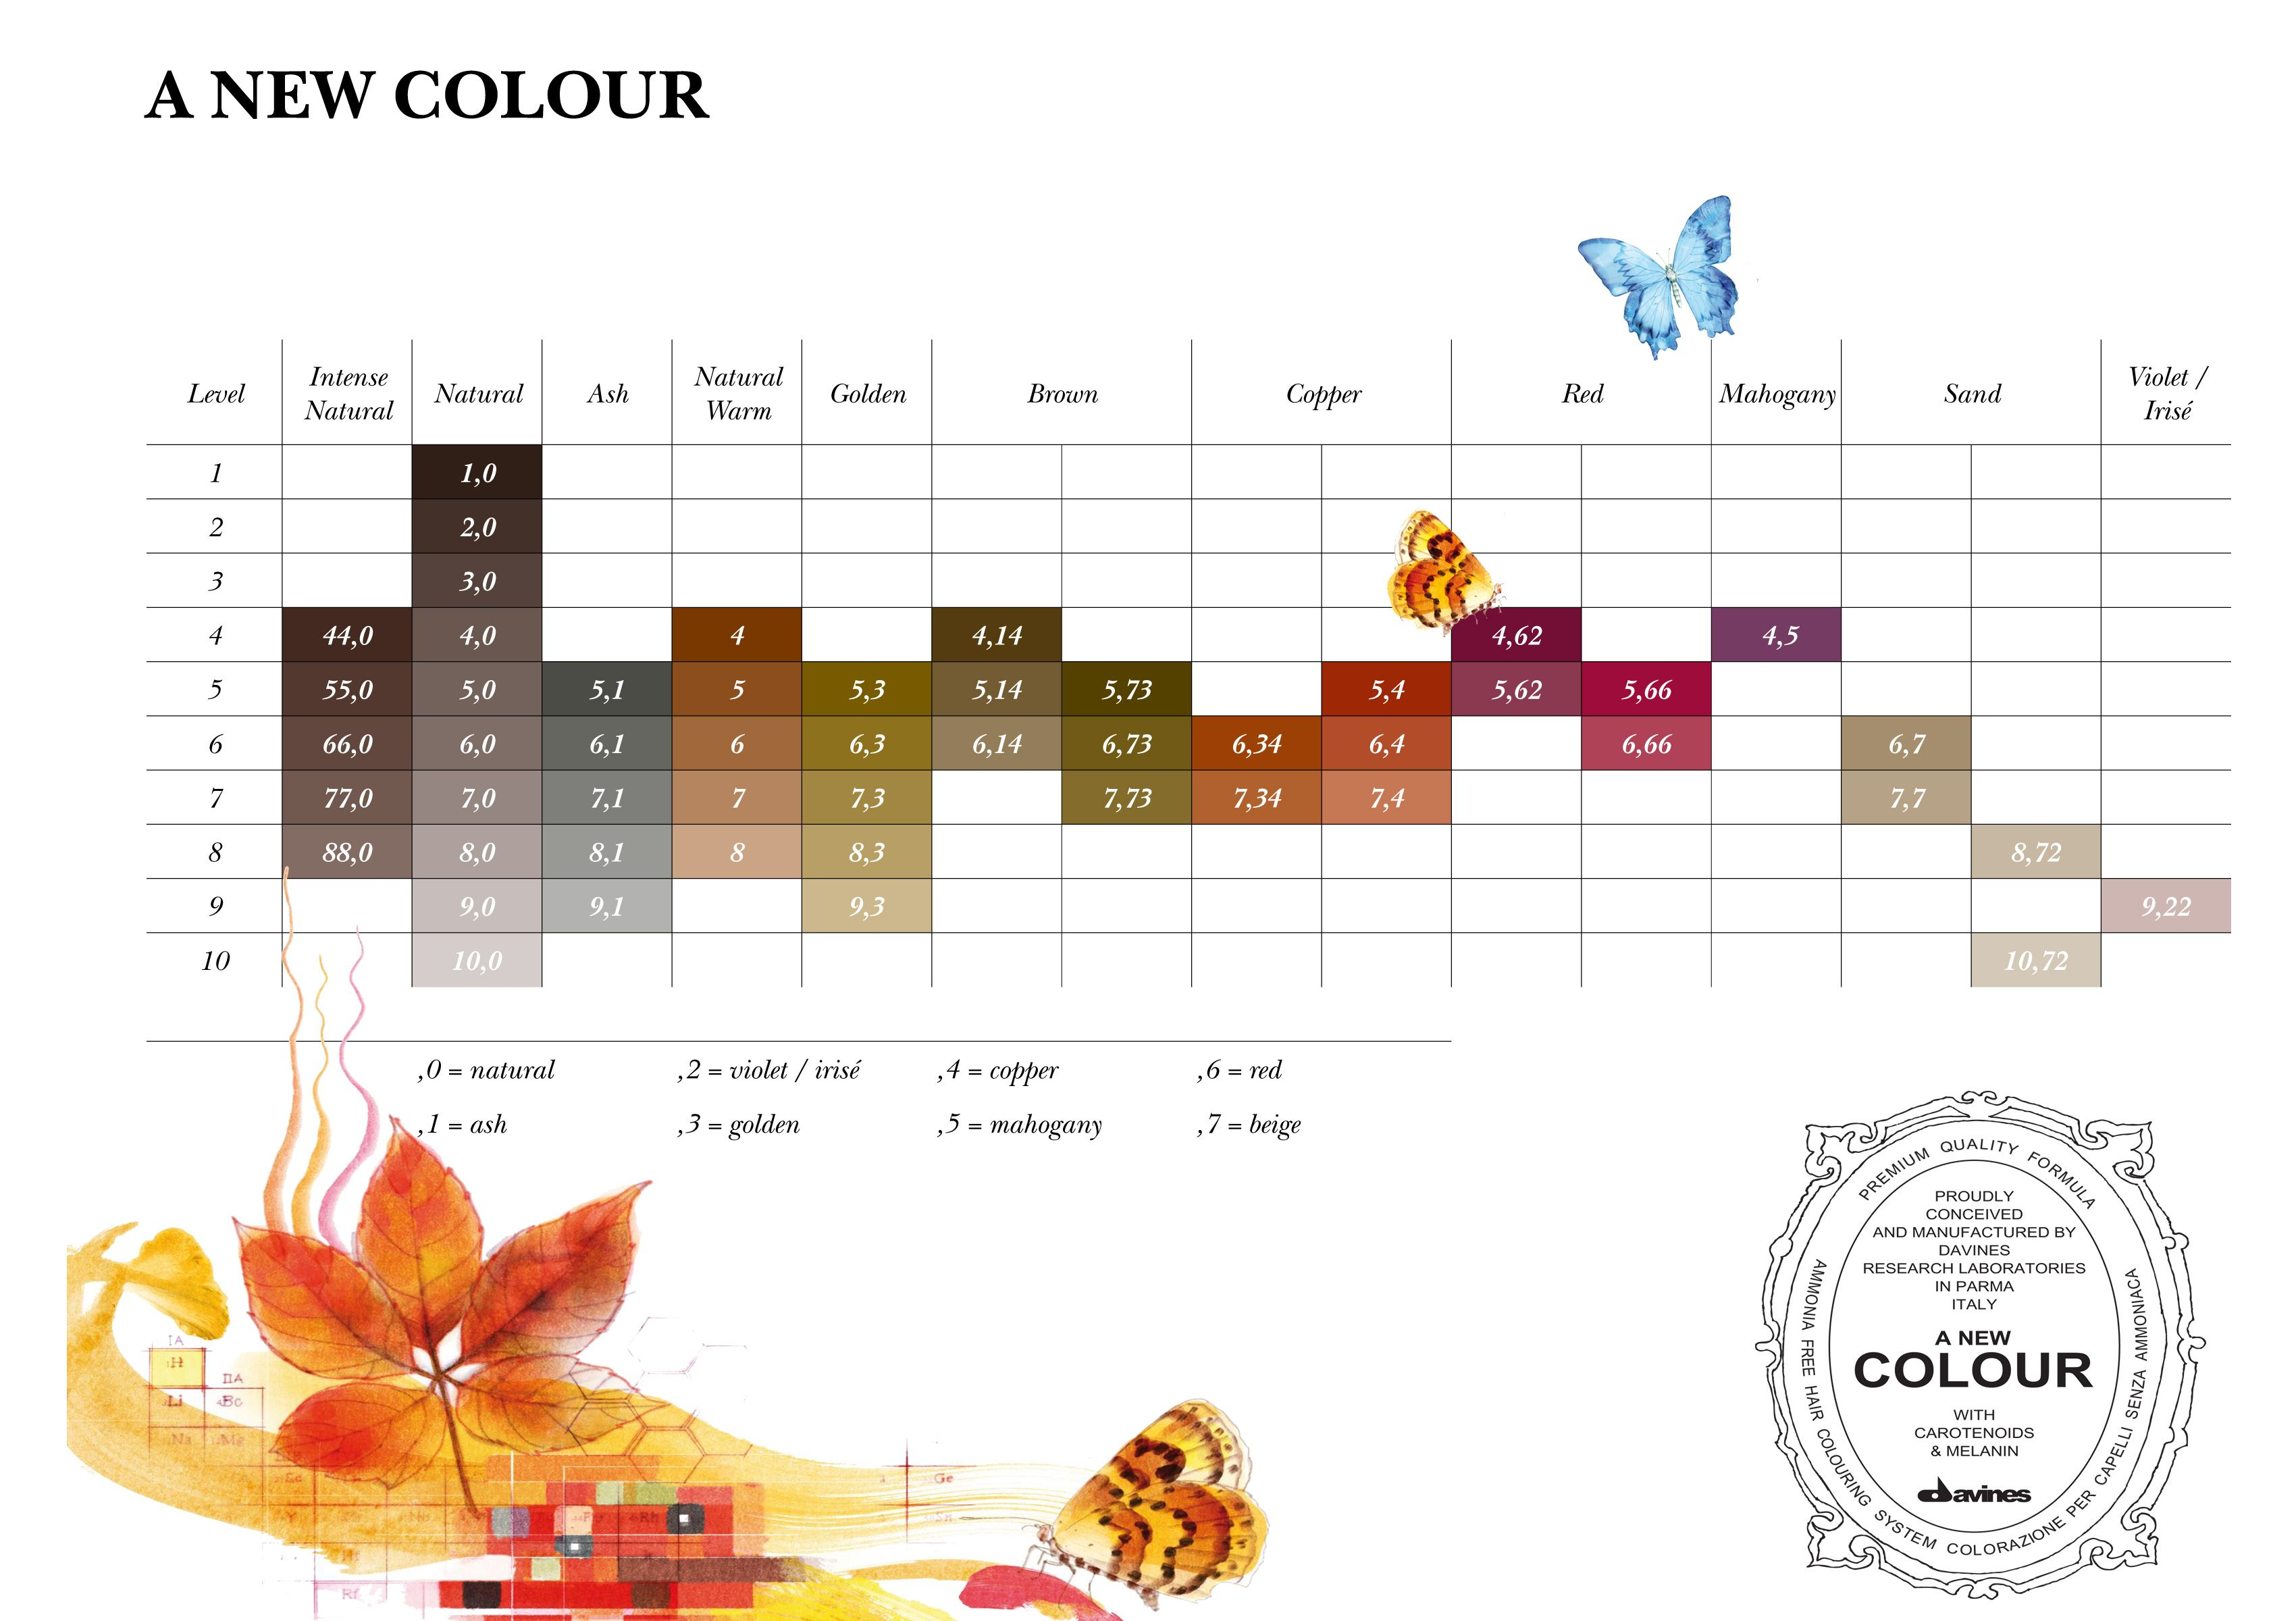 Davines A New Colour Shades Chart